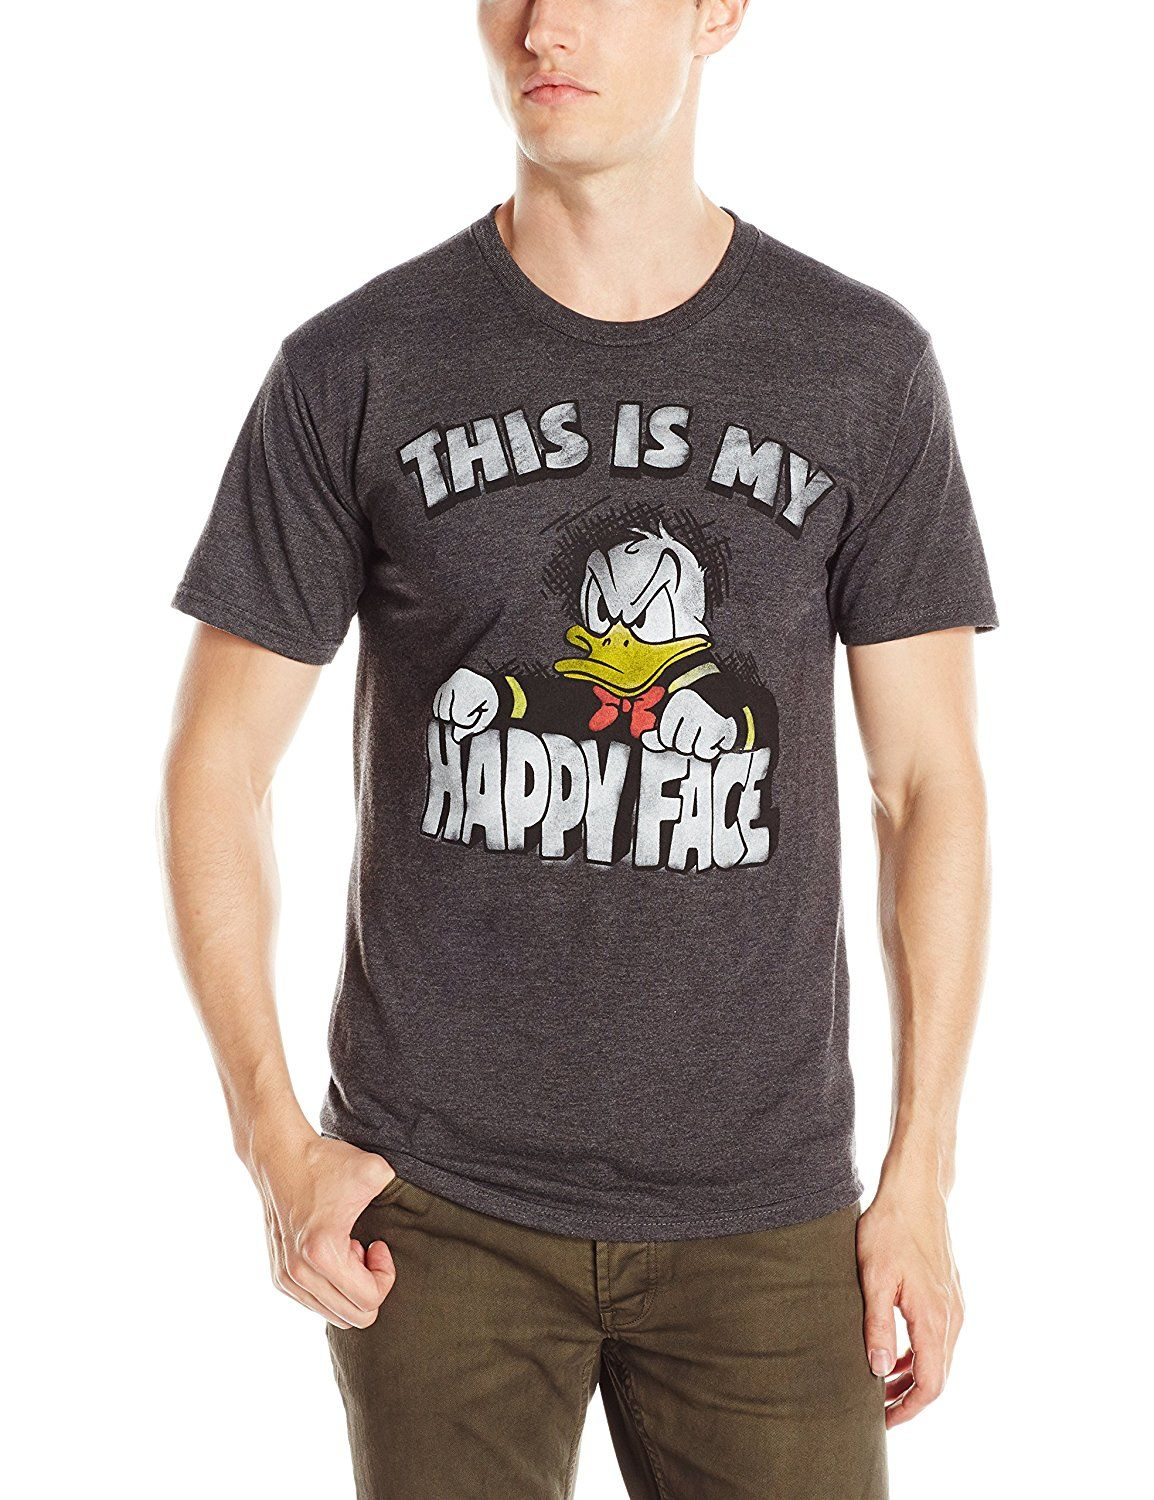 bffa824a6b Amazon.com: Disney Men's Donald Duck T-Shirt: Clothing. Angry Donald Duck -  Cool and Funny.